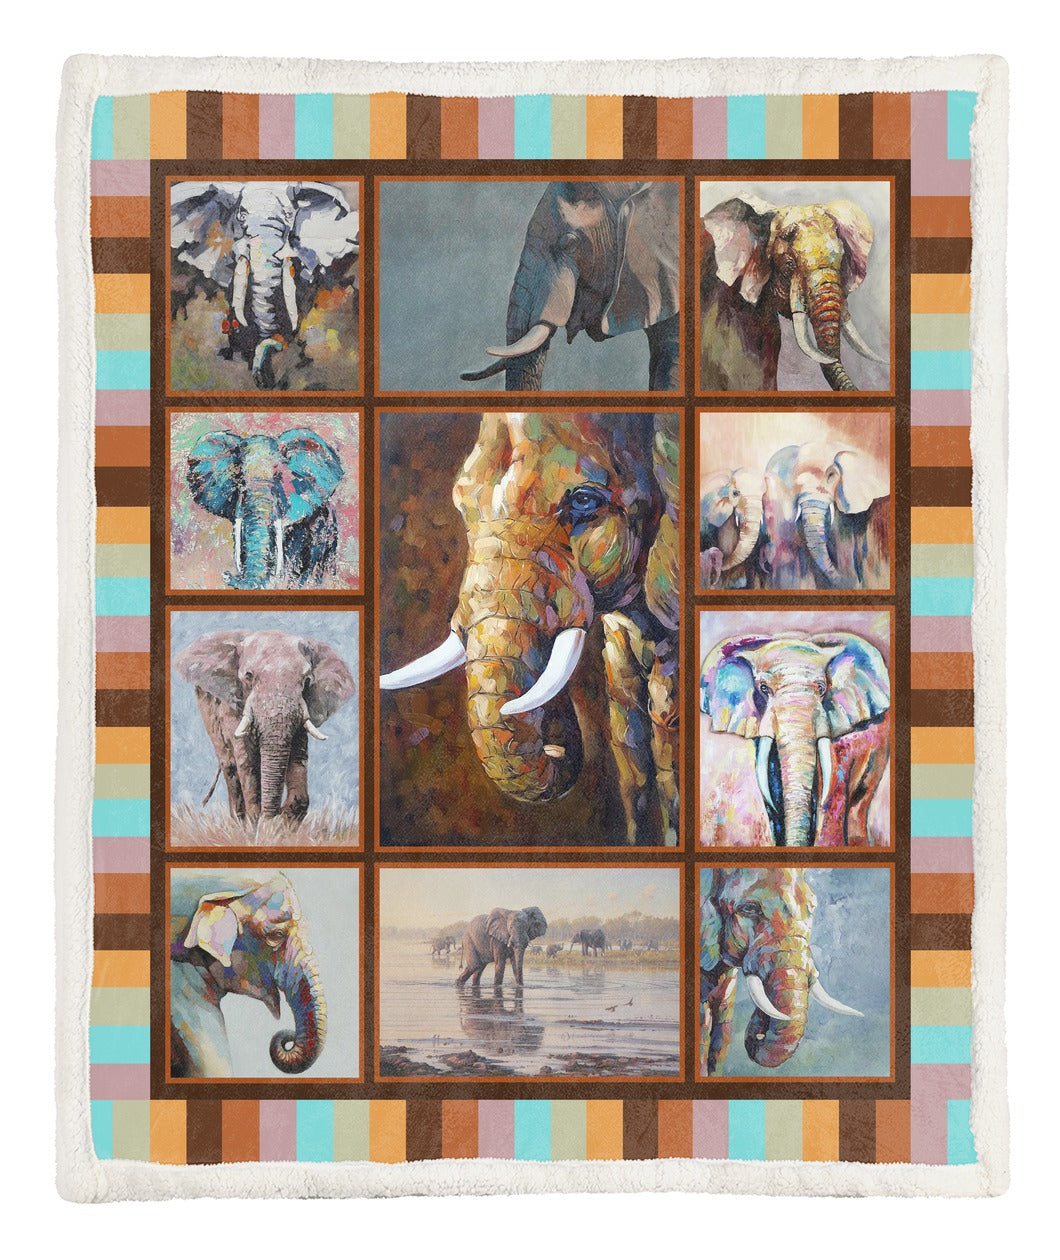 elephant-throw-blanket-tabccc19101779